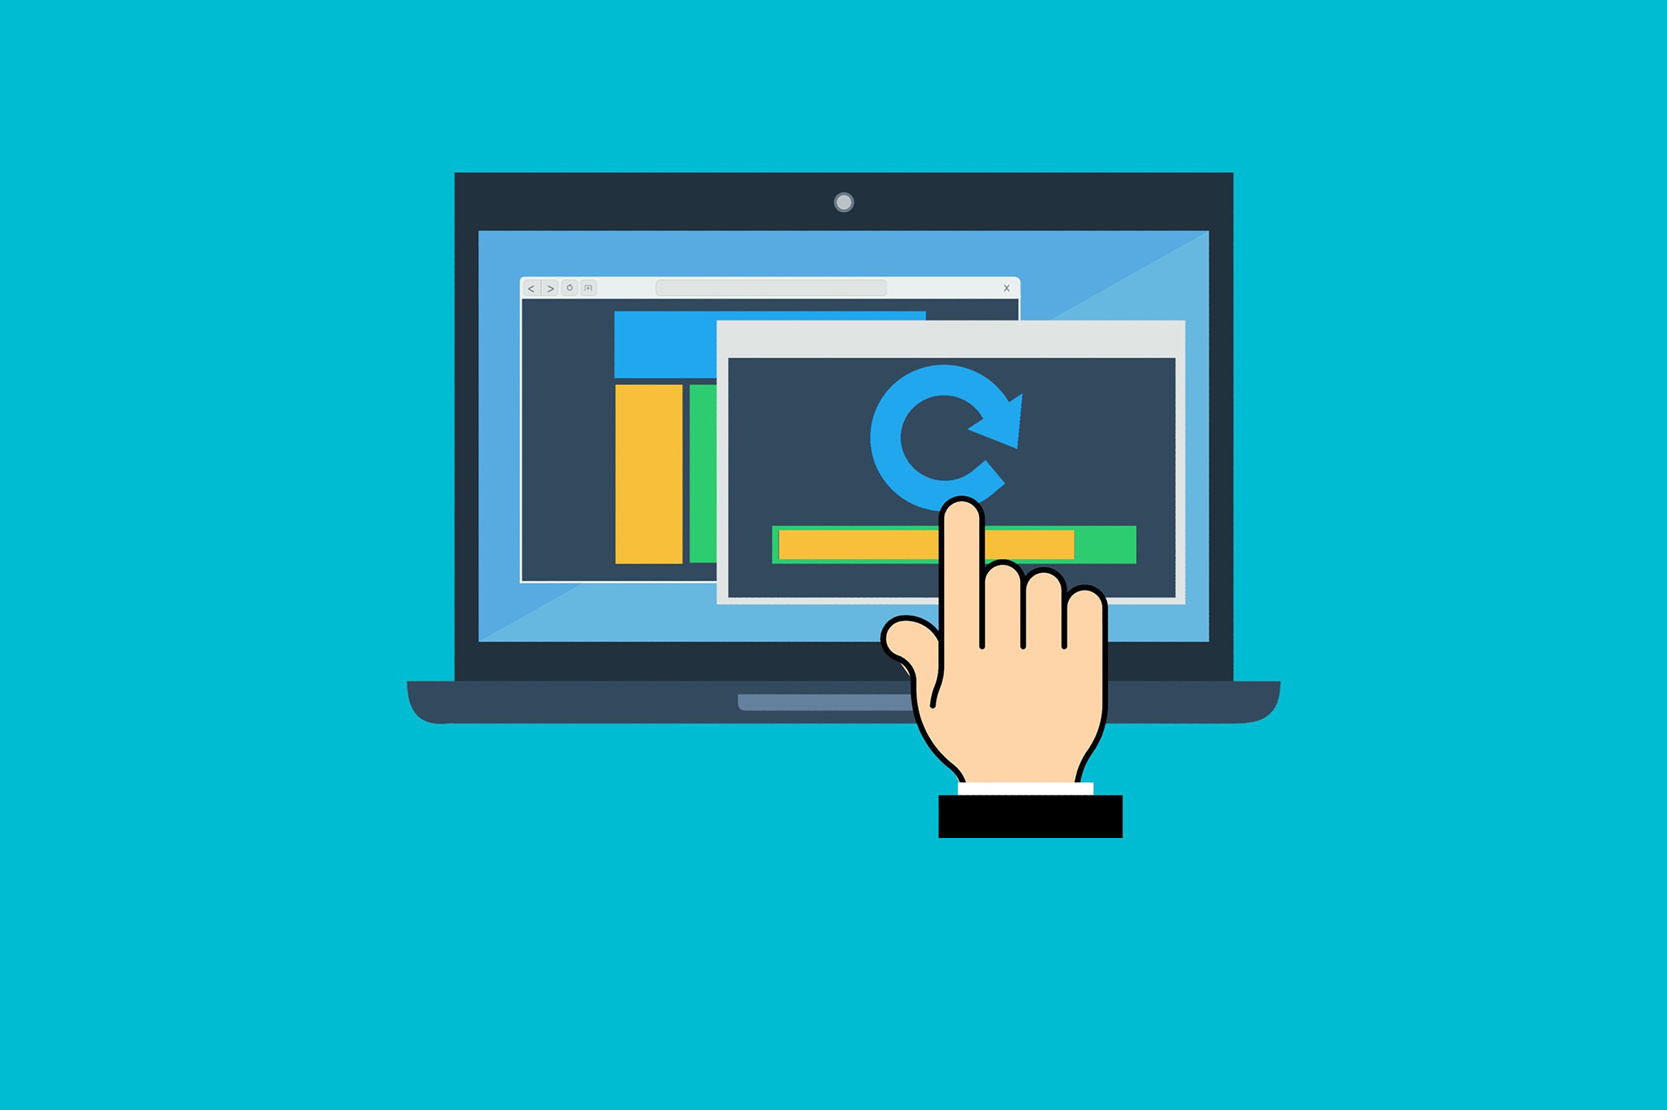 Illustration of hand clicking on computer screen with arrow